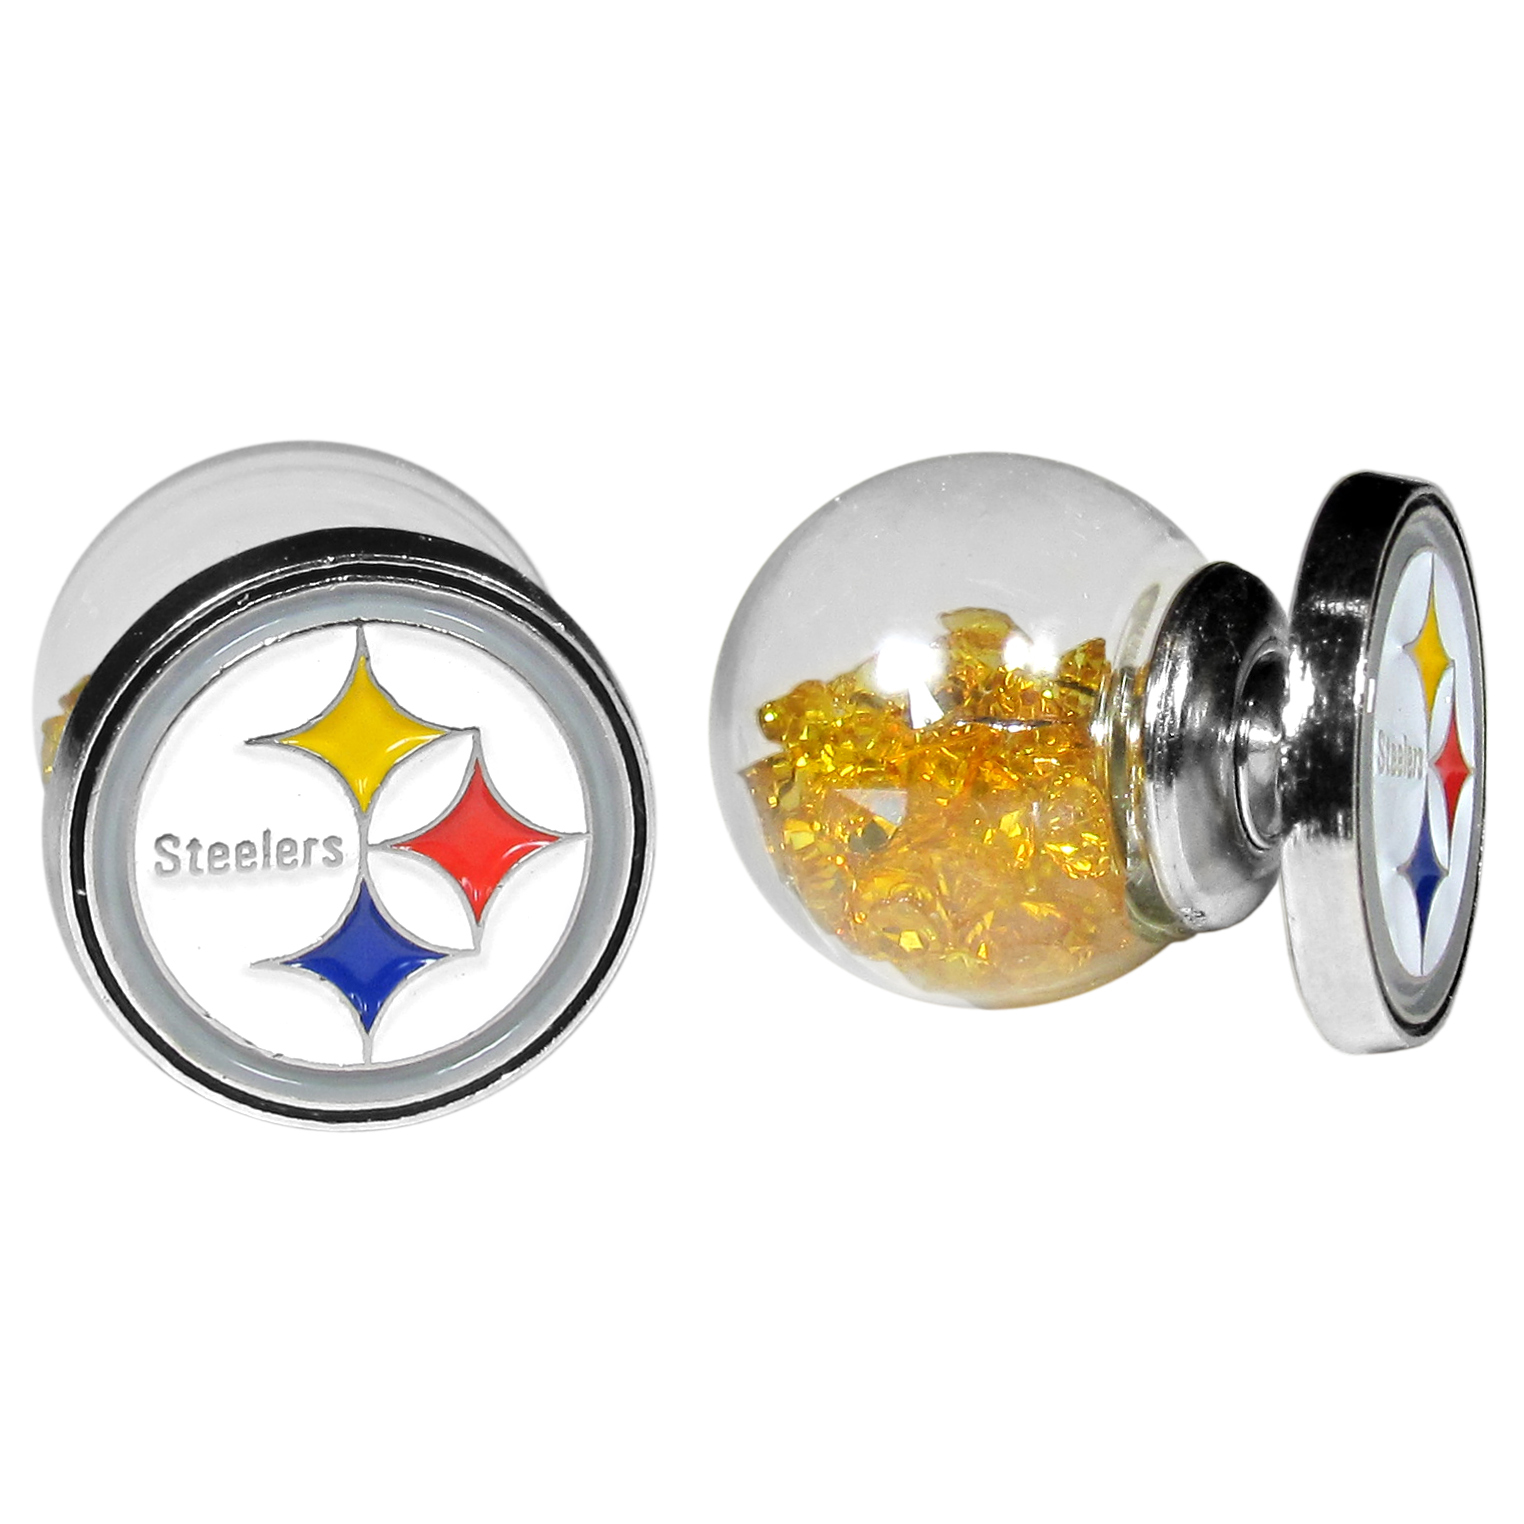 Pittsburgh Steelers Front/Back Earrings - Get in on one of the most popular trends in jewelry, front and back earrings! This must-have style is all of over the red carpets and we taken this contemporary look and paired it with your love of the Pittsburgh Steelers! The front of the earring is a sporty team logo and the back of these eye-catching earrings is a glass ball filled with colored crystal beads. This piece is perfect for a fashion-forward fan, with bold taste and trend-setting style.